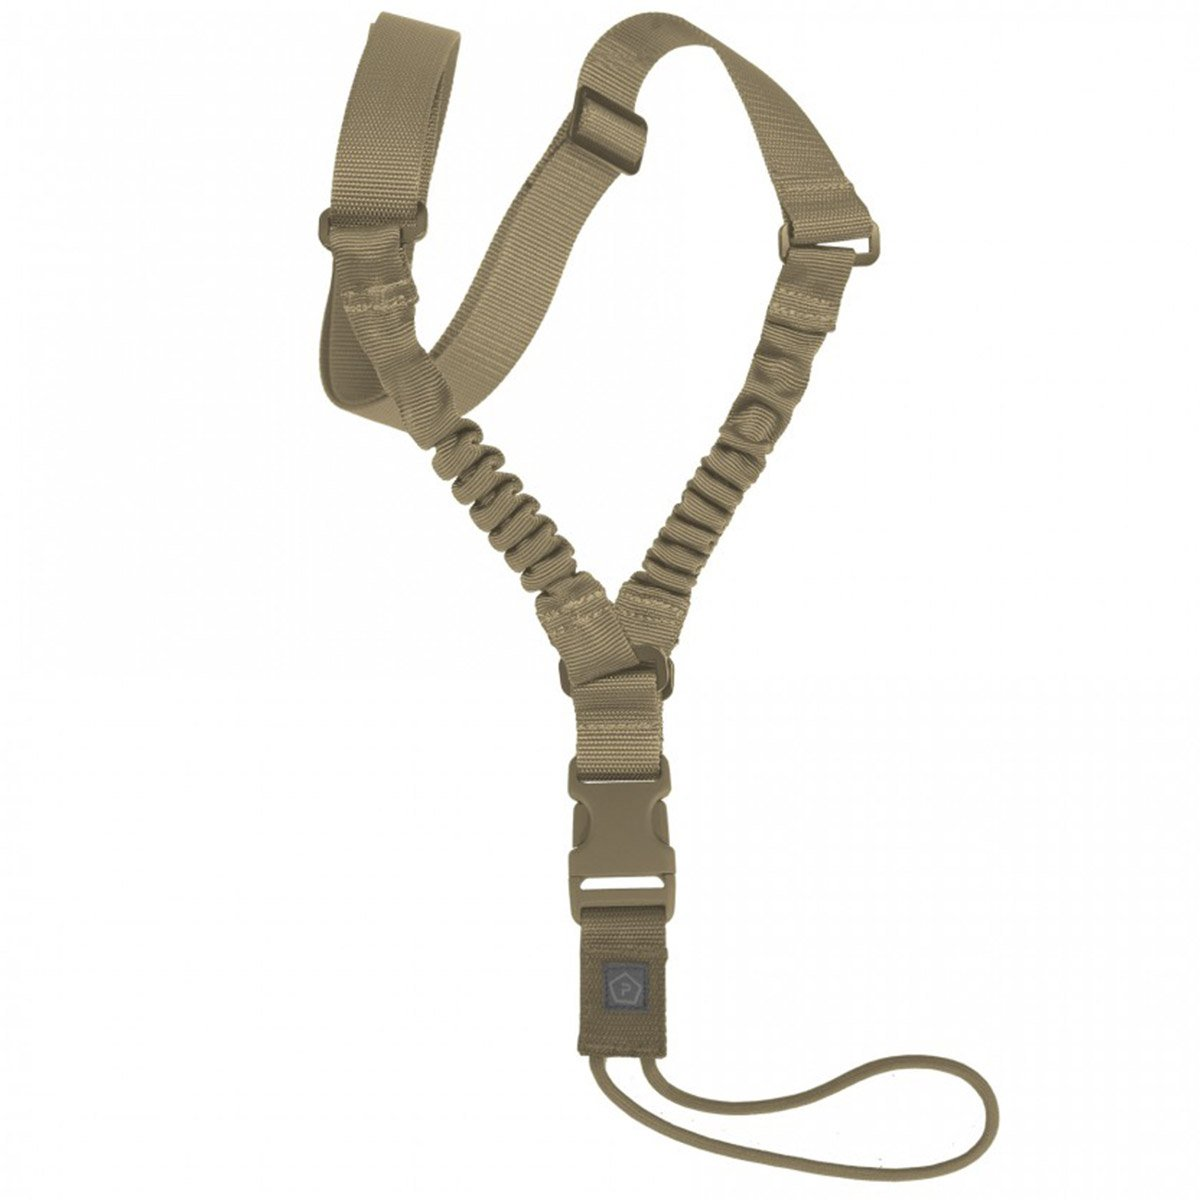 PENTAGON AMMA RIFLE SLING | 1-Point Bungee Weapon Sling | Coyote | UKMC Pro